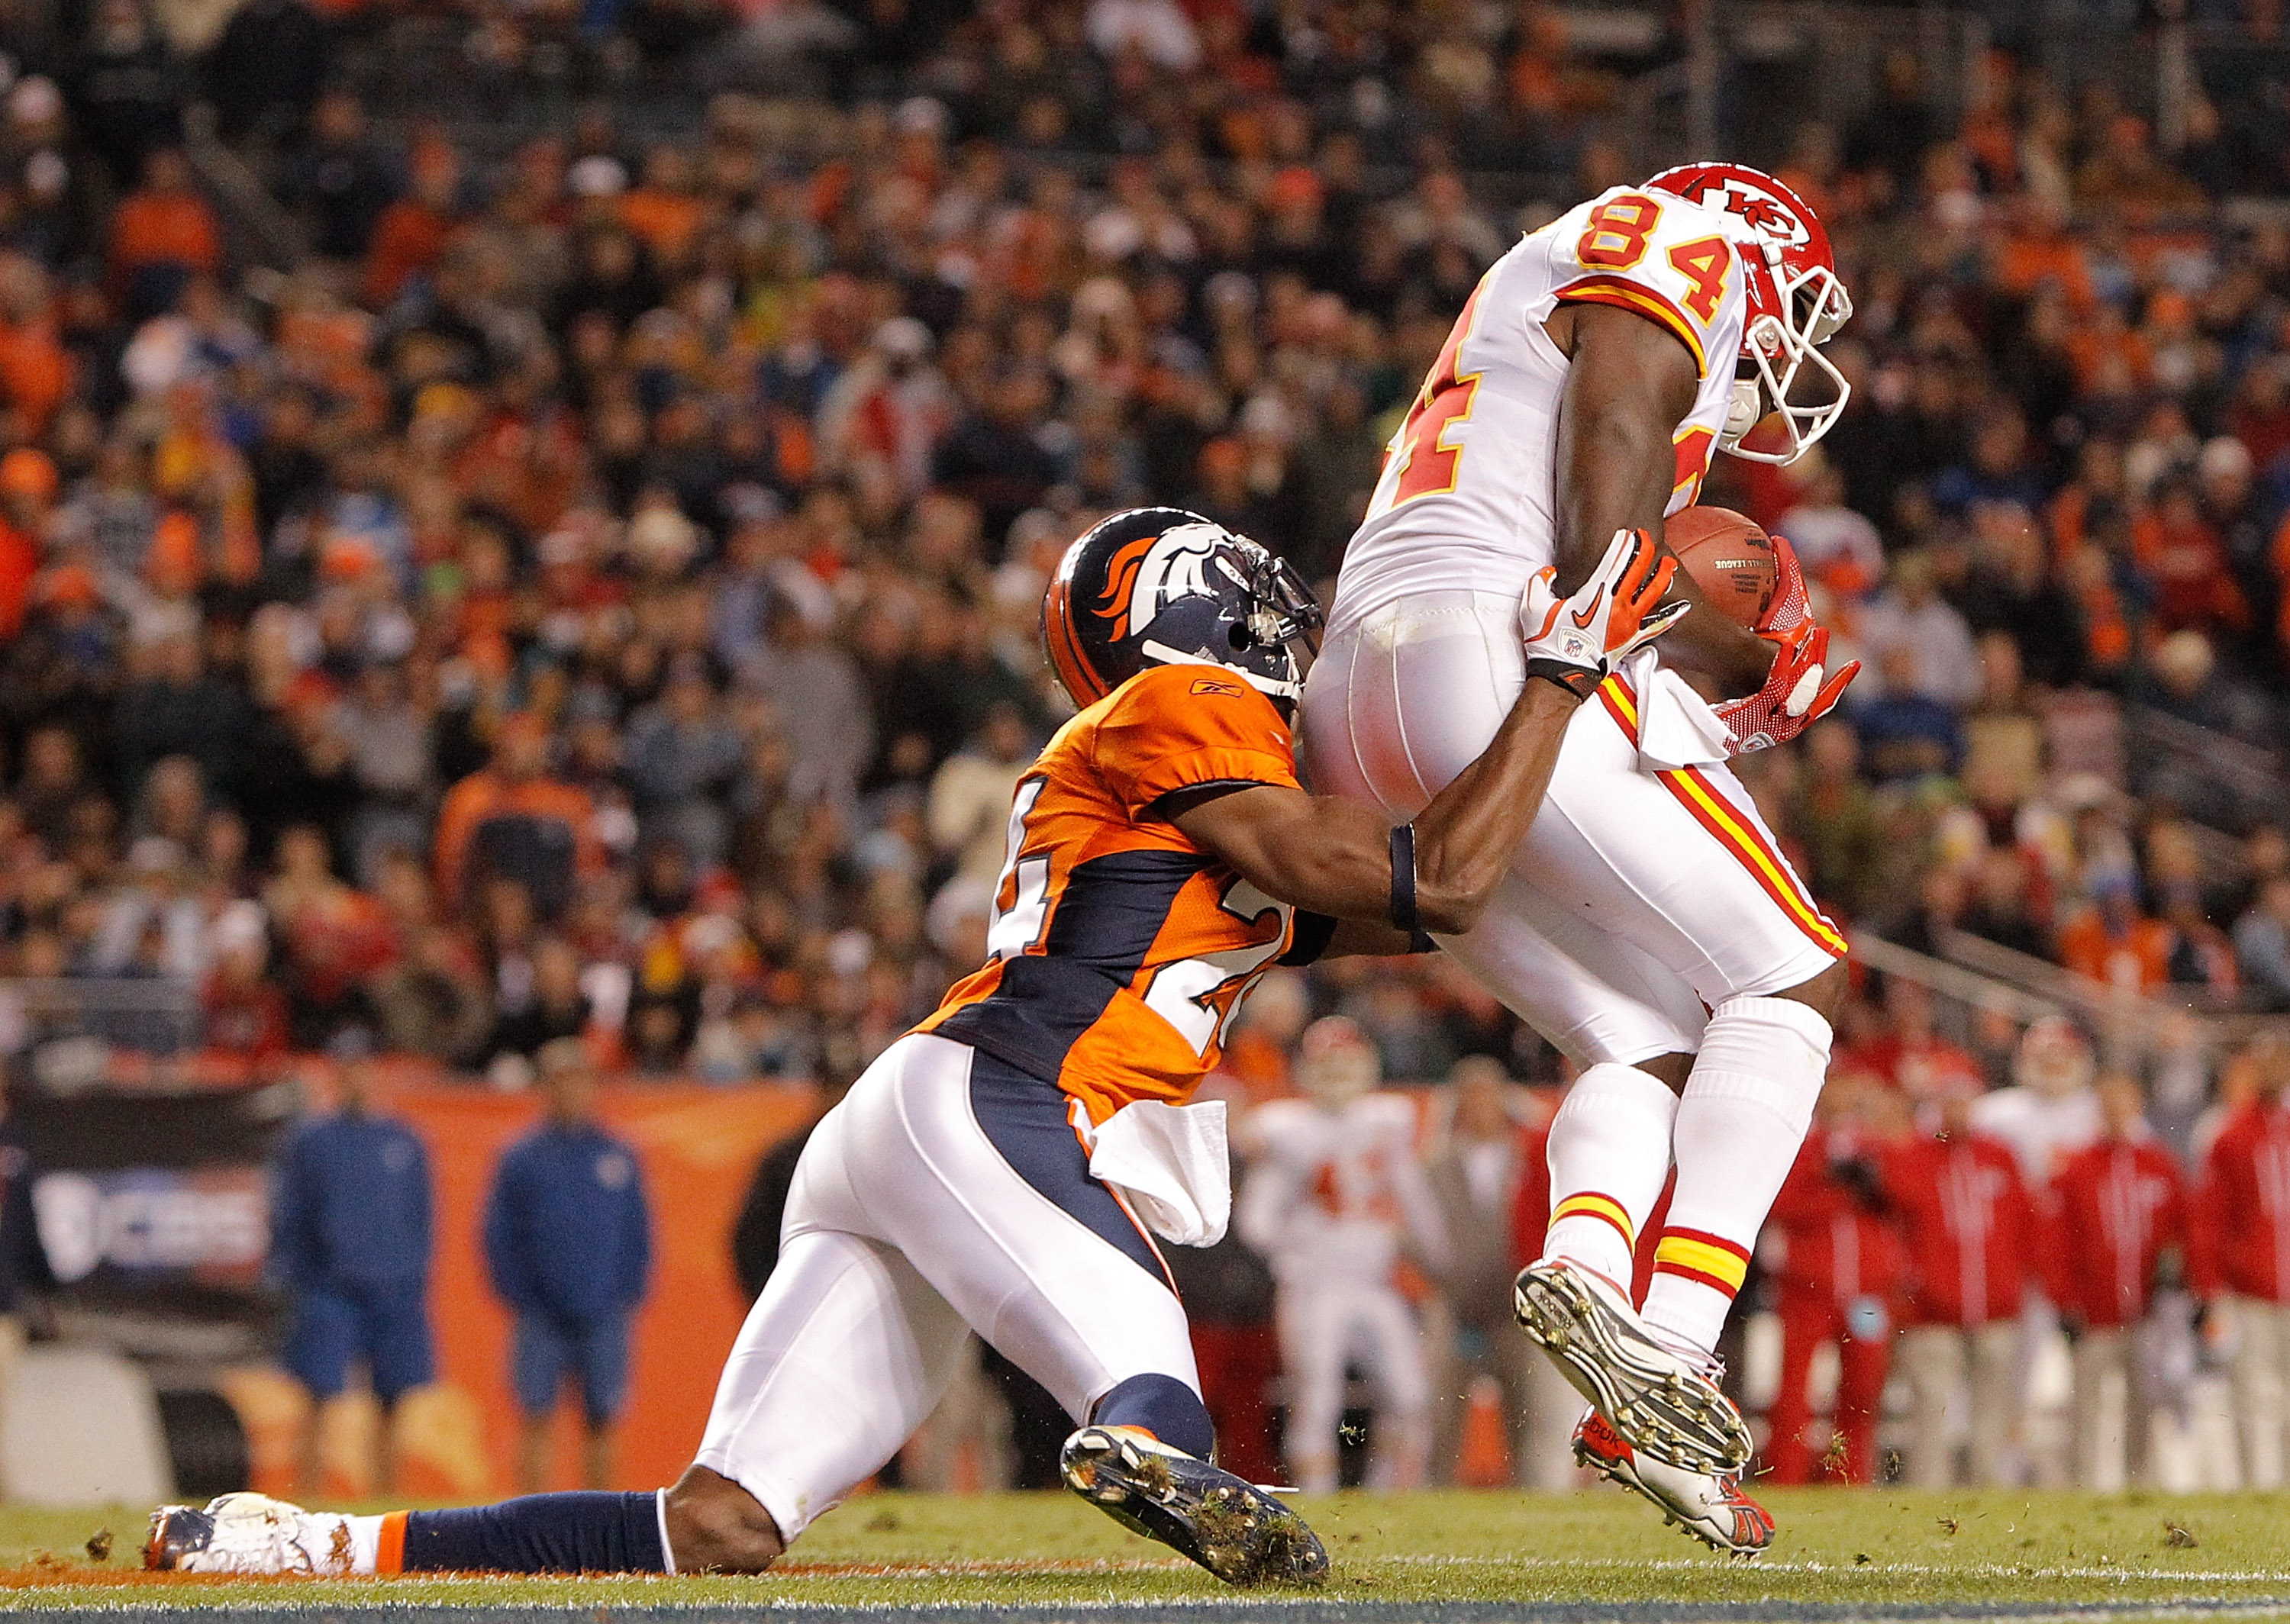 DENVER - NOVEMBER 14:  Wide receiver Chris Chambers #84 of the Kansas City Chiefs makes a reception for a touchdown in front of cornerback Champ Bailey #24 of the Denver Broncos during the fourth quarter at INVESCO Field at Mile High on November 14, 2010